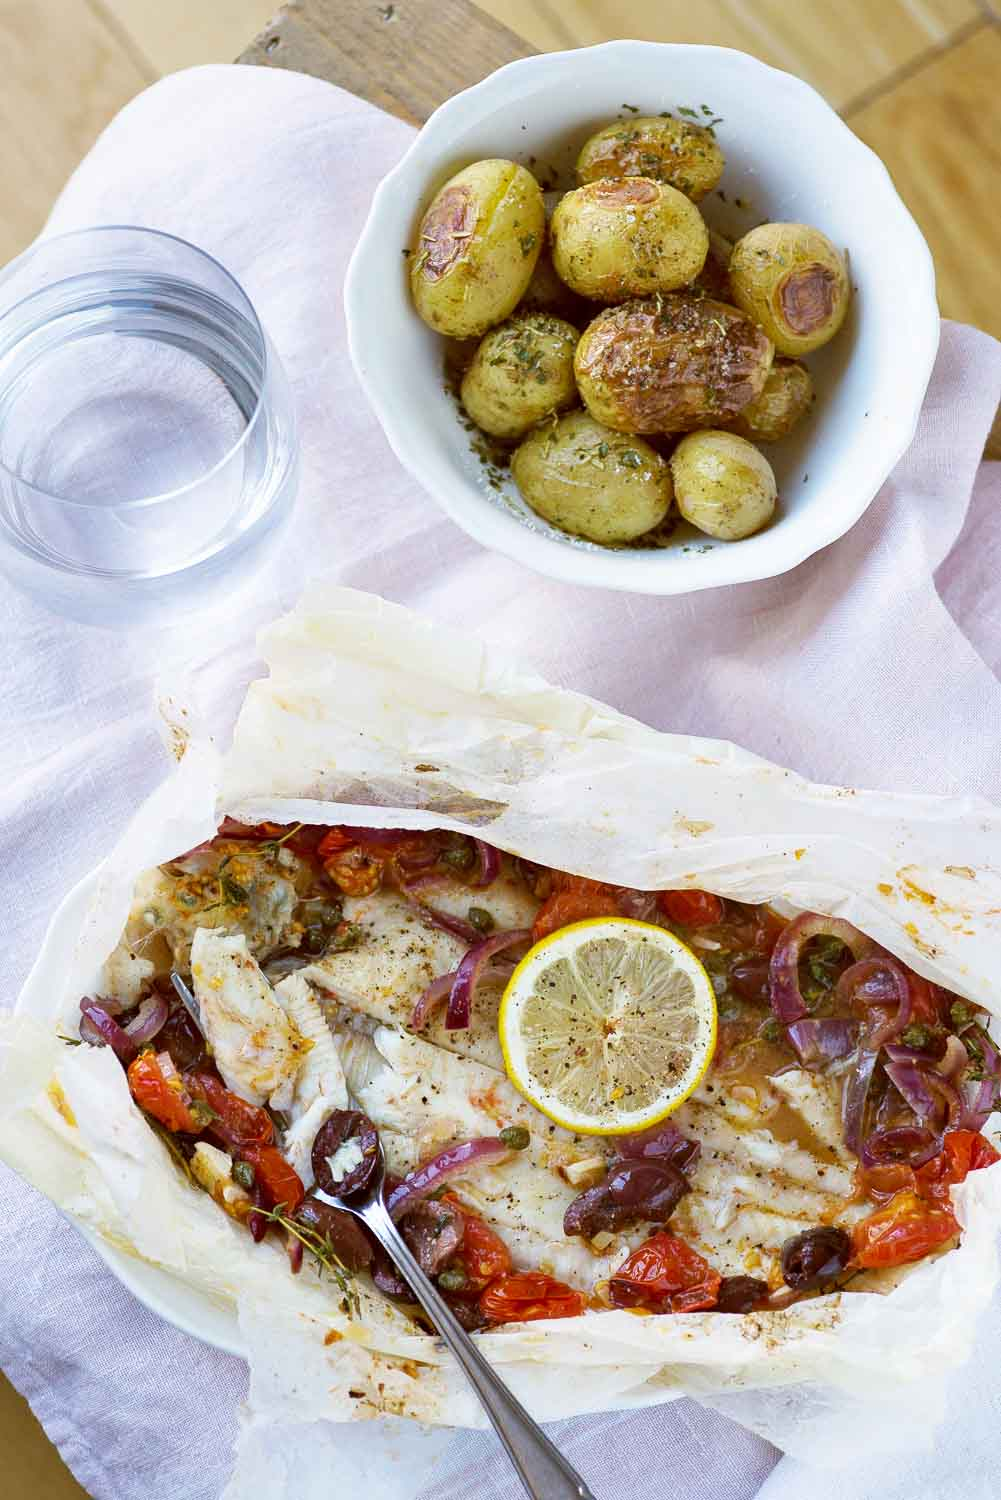 "Sole 'en Papillote' with Tomatoes, Olives, Capers Over the last month, and the arrival of shorter and colder days, I have spent more time cooking at home than I have done in the whole summer. I crave warm food, filling dishes of fish (we don't cook meat at home), spiced pulses and roasted vegetables. The Dover Sole ""en papillote"" is a filling dish, yet light, perfect for a weekday dinner. 70% of fish consumption in the UK comes from just five fishes: Cod, Haddock, Salmon, Tuna and Prawns. Most people don't feel confident cooking with a fish they have never cooked before, so they prefer to stick to the most familiar species. Obviously, this is not sustainable as it leads to over-fishing. In order to promote customers to try different species of fish and seafood, Sainsbury's have launched a new fresh fish range called Fishmonger's Choice. It includes lesser-known fresh British species such as Whiting, Monkfish and Dover Sole, all wild-caught off the South West coast of Britain. The range varies according to the seasons and when a certain species is more abundant in the sea. When I'm baking, I like to experiment with a new recipe every time, but when it comes to cooking I'm a creature of habit. So when Sainsbury's challenged me to cook with Dover sole, at first I was worried about the outcome. I shouldn't have been though, as sole is not a complicated fish to cook. I absolutely love this recipe and I am surely going to make it a lot over the winter. Baking soles en En Papillote is simple and quick. It's a style of baking fish or meat wrapped in a paper parcel, with your favourite vegetables and a dollop of butter. The heat creates steam, which is wrapped inside the parcel and gently cooks the fish. I paired the Dover sole with fresh flavours of the Mediterranean: olives, tomatoes, capers, lemon, thyme and extra virgin olive oil. These flavours remind me of home. This recipe is versatile: you can choose different types of vegetables to cook with the fish (as long as they cook within 15 minutes, such as courgettes or asparagus). I also like to add cooked couscous to the bottom of the parcel, underneath the fish. My husband doesn't love eating fish, but when I prepared this dish for him, he absolutely loved it. Perfect for picky eaters! Ingredients Serves two. • 2 Fishmonger's Choice Dover Sole on the Bone (about 400g in total) • 2 tbsp extra virgin olive oil • 1 small red onion, sliced • 2 cloves garlic, thinly sliced • ½ tsp chilli flakes • 20 cherry tomatoes, halved • 10 large, pitted black olives, halved • 3 tsp capers, drained • 20g unsalted butter, divided in two pieces • 10 fresh thyme sprigs • 2 thin lemon slices • Salt and freshly ground black pepper Preparation Preheat oven to 200°C. Cut two 40cm-long pieces of baking paper. Fold in half, then cut a half-circle or heart-shape. Open flat and place on a baking sheet. Place each sole on a piece of paper. Place a small pan over medium heat. Sauté sliced onions, garlic and chilli flakes in olive oil until golden, for about one minute. Lower the heat. Add the tomatoes, olives, capers Remove skillet from heat; stir in tomatoes, capers and olives. Season with salt and pepper. Cook for a couple of minutes, then remove from the heat. Sprinkle the fish with salt and pepper, then divide the tomato mixture between the two portions. Cover the fish with the vegetables, then top with butter, thyme sprigs and lemon. Lift the other half of baking paper and place over fish. Seal the edges, making small folds all the way around until completely sealed. Place packets on a large baking sheet. Bake in the oven for 15 minutes. Serve the sole in the paper parcel with roasted potatoes on the side. Sainsbury's Fishmonger Choice range is available to buy in over 200 stores nationwide. Disclaimer: this post was written in collaboration with Sainsbury's. All opinions are my own."